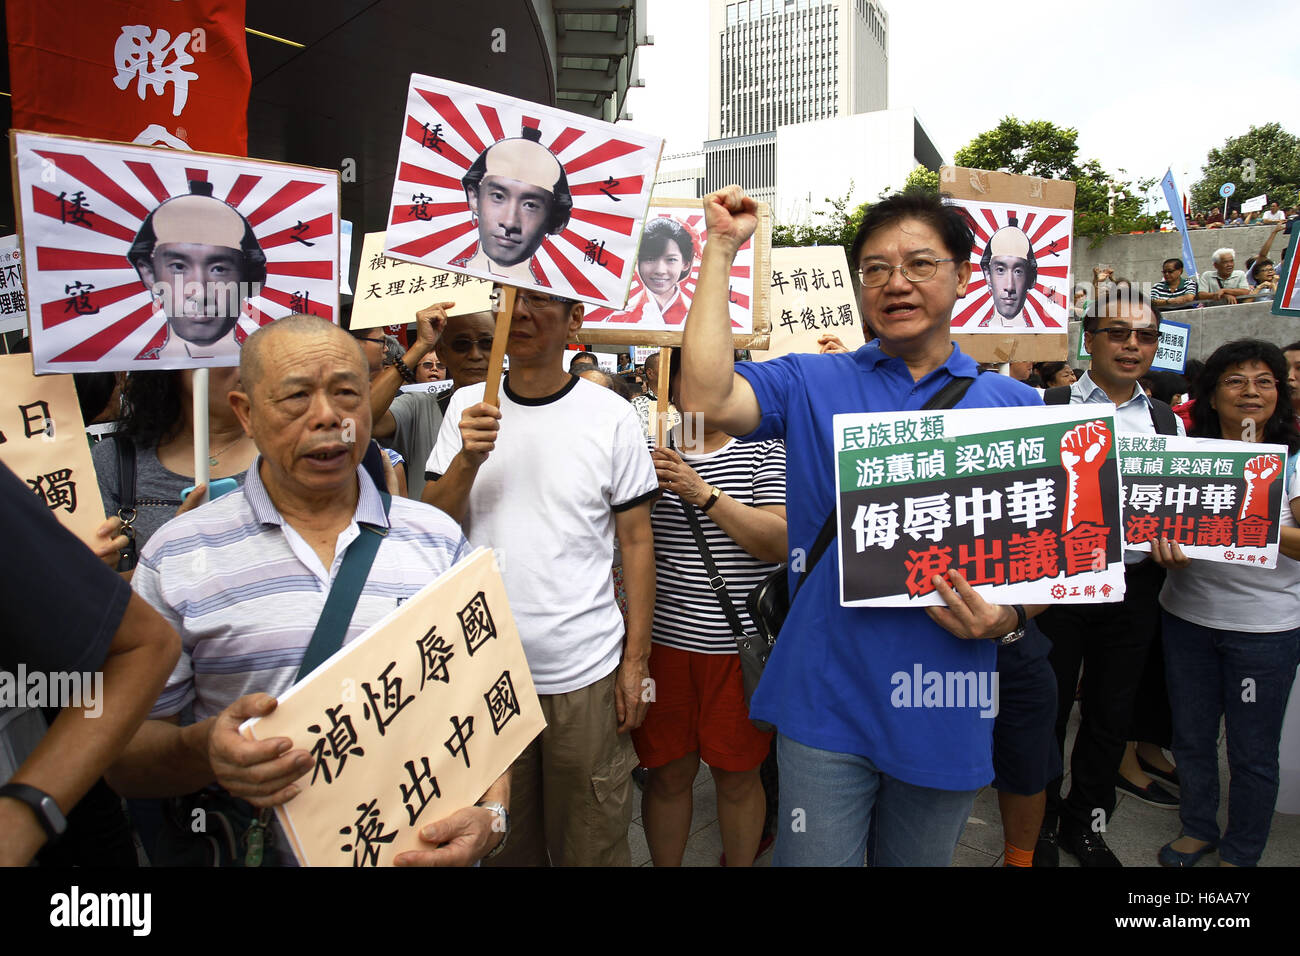 October 26, 2016 - Pro-China protesters rallied outside Legislative Council building holding a banner with a ridiculed - Stock Image